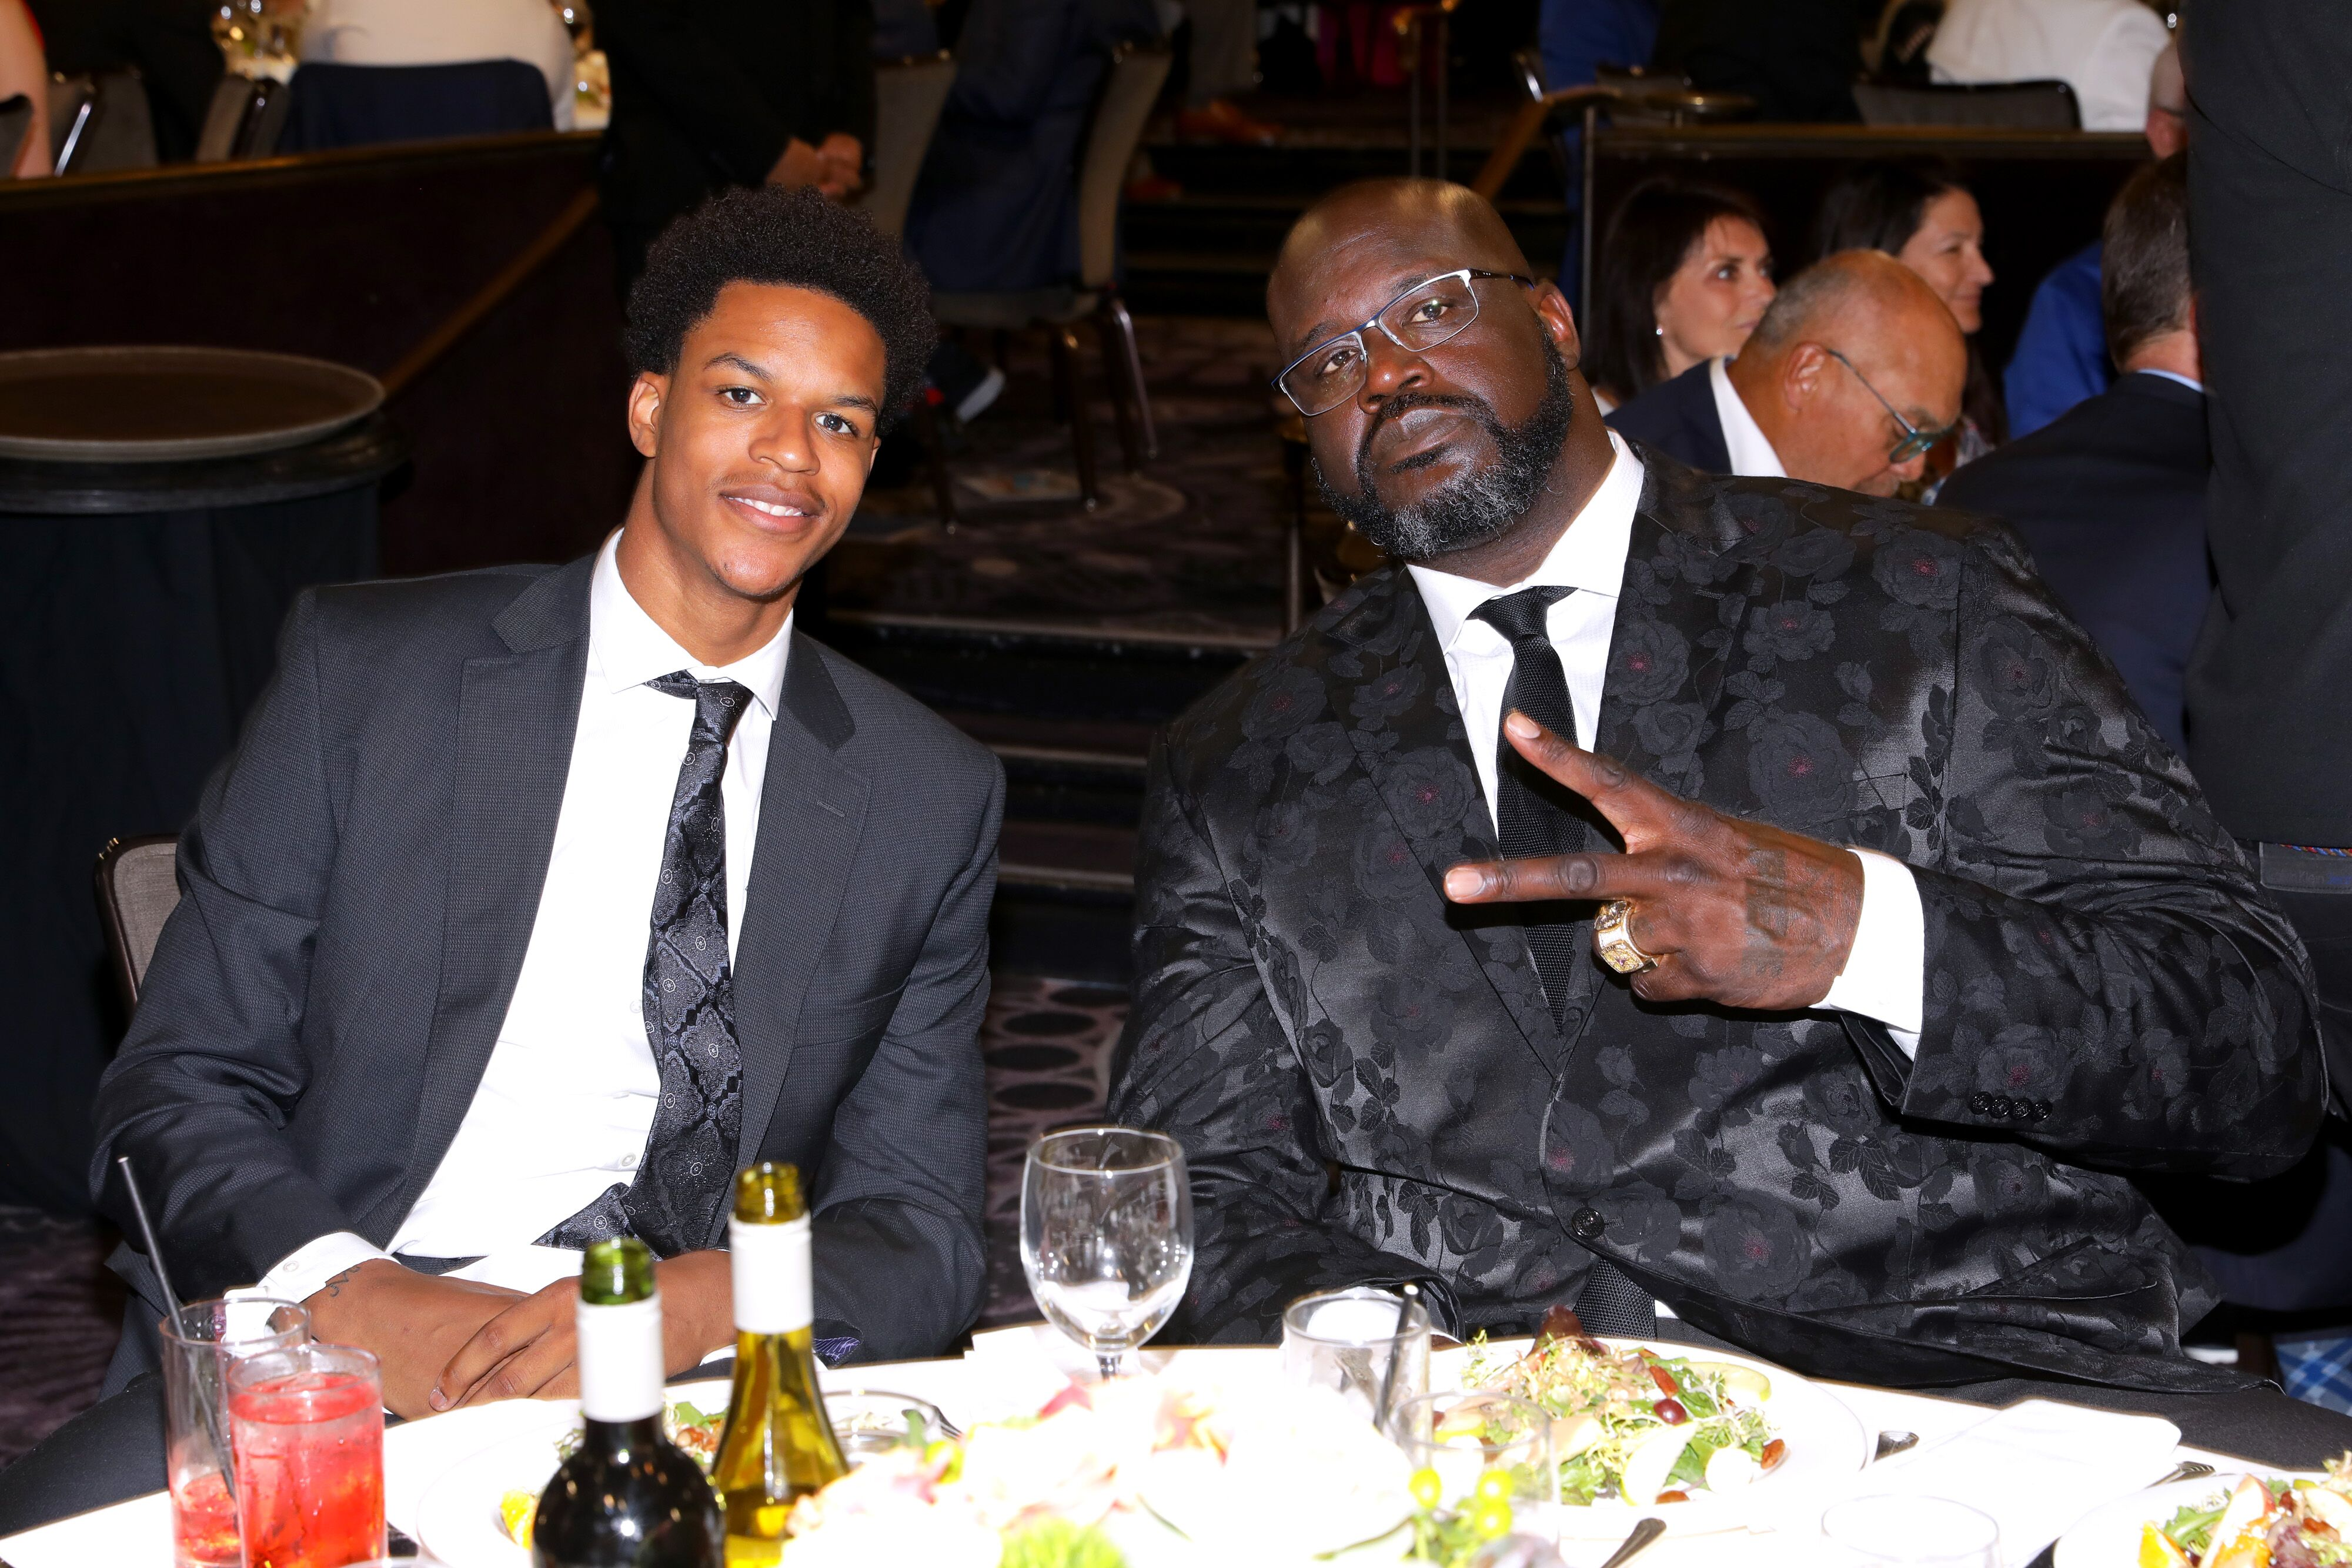 Shaquille O'Neal and son Shareef at the 19th annual Harold and Carole Pump Foundation Gala in 2019/ Source: Getty Images